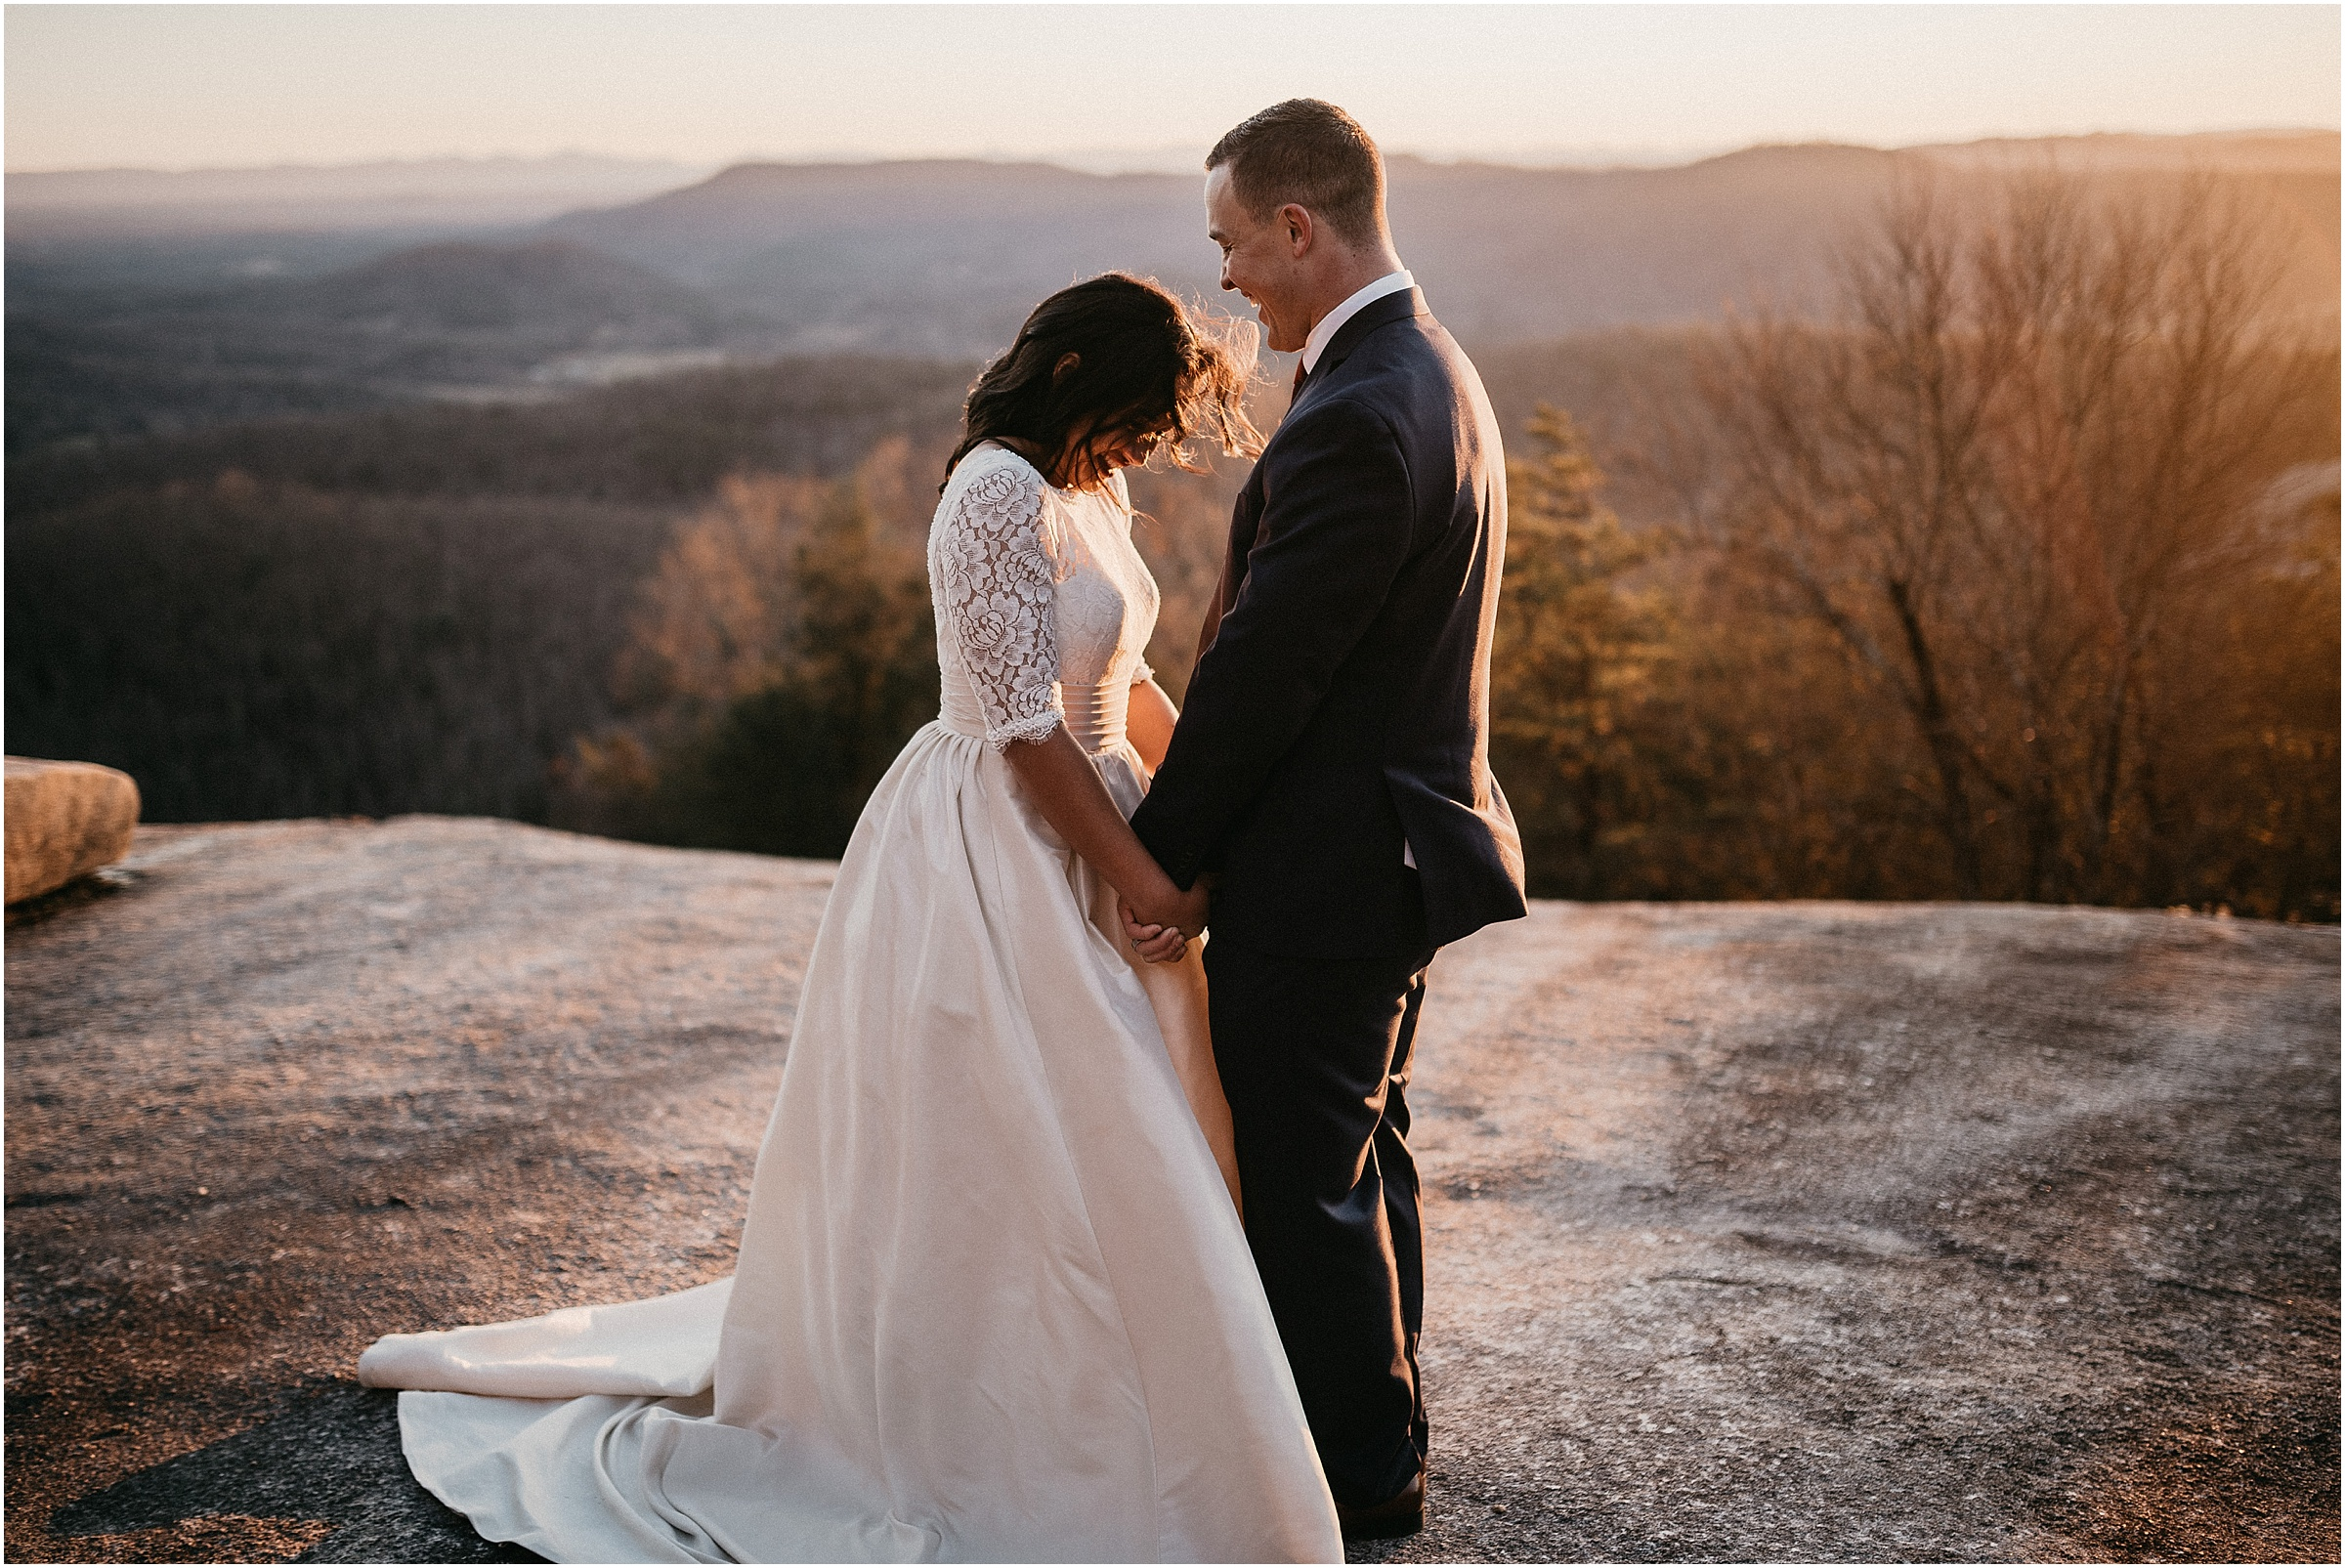 Stone_Mountain_NC_Elopement_49.JPG